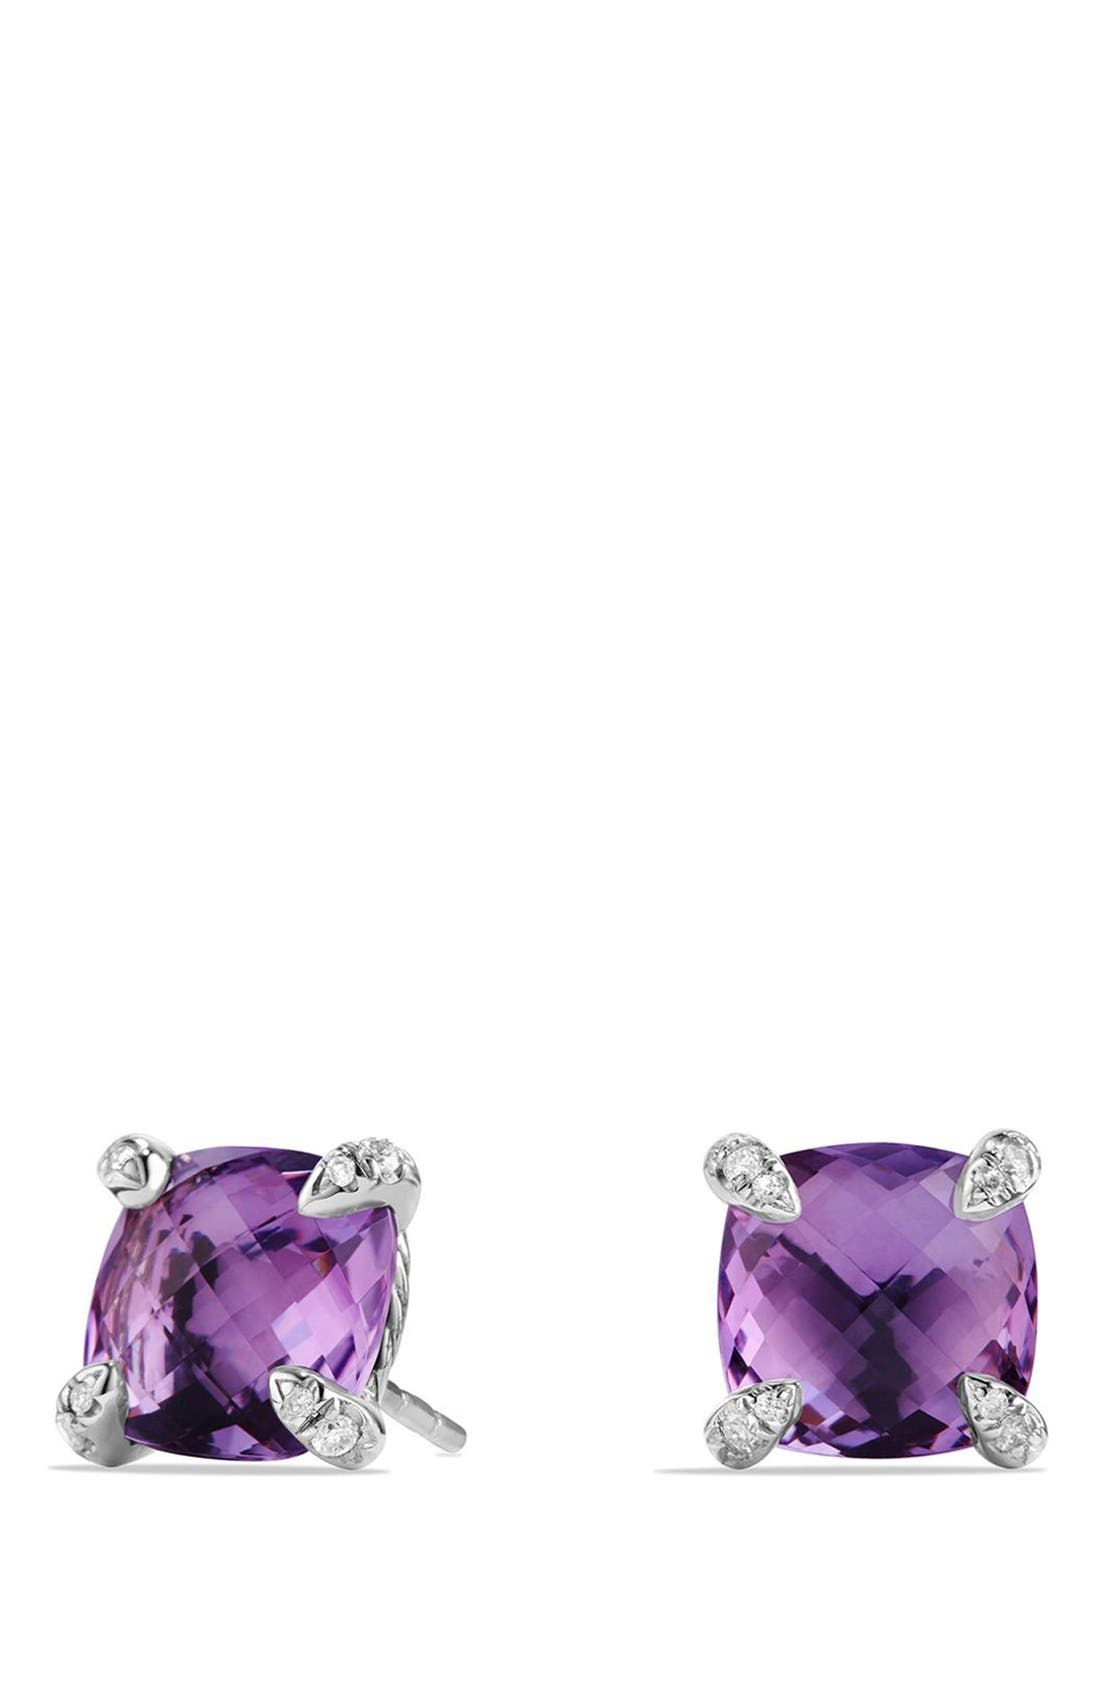 'Châtelaine' Earrings with Semiprecious Stones and Diamonds,                         Main,                         color, Silver/ Amethyst